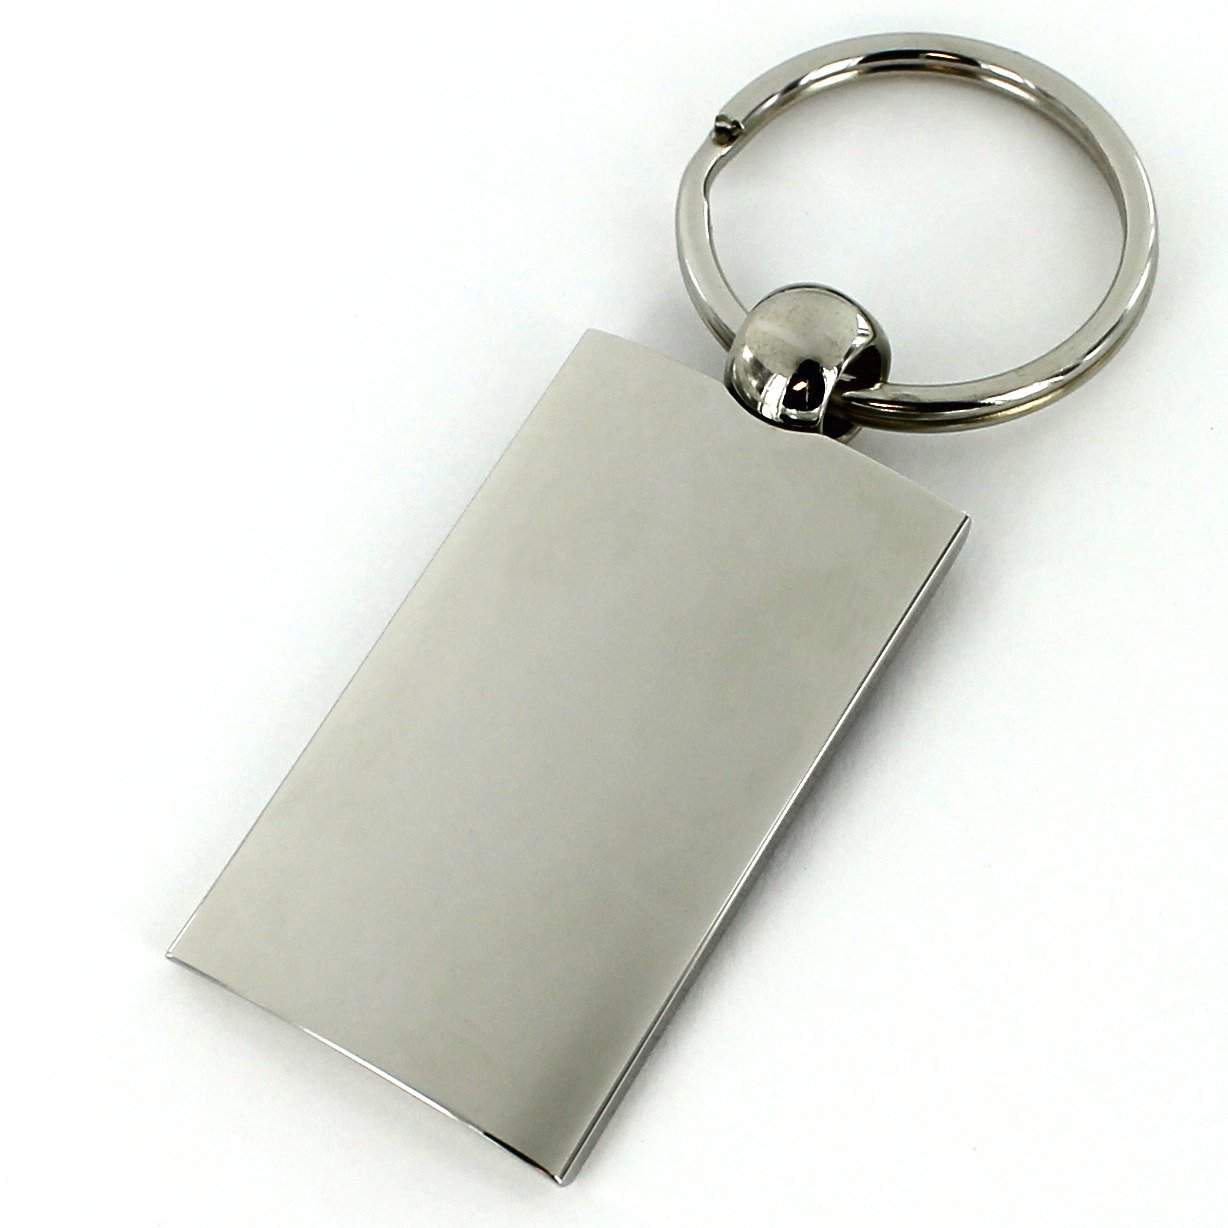 LINCOLN BLACK SPUN BRUSHED METAL KEY RING